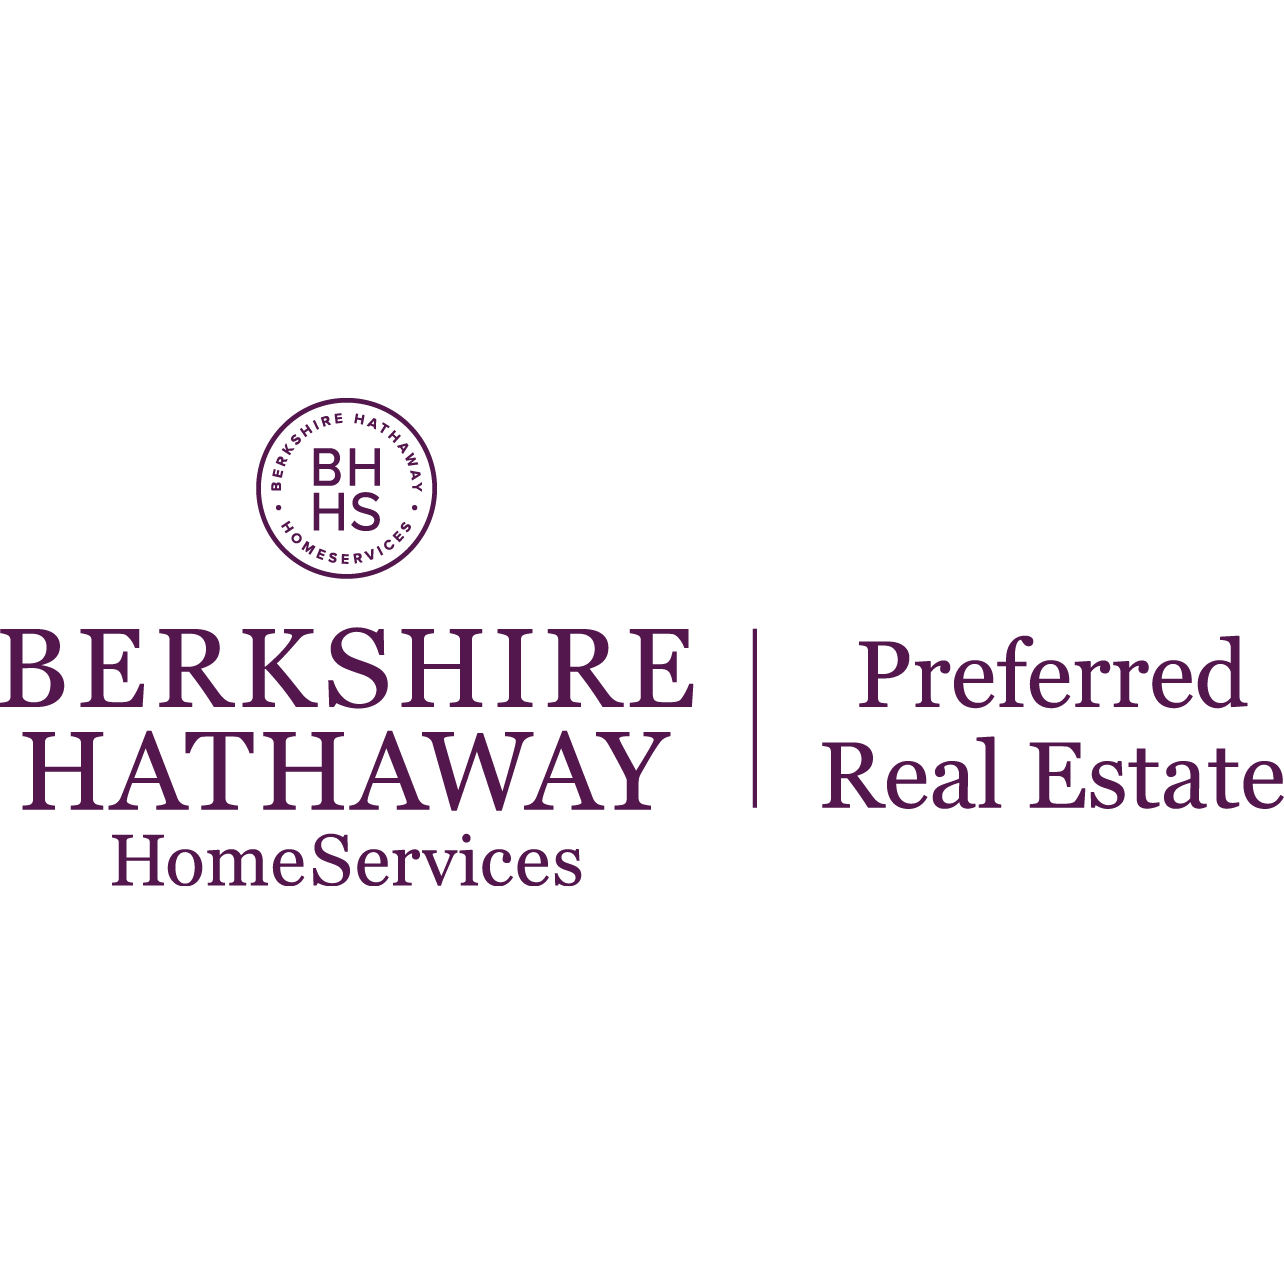 Berkshire Hathaway HomeServices Preferred Real Estate